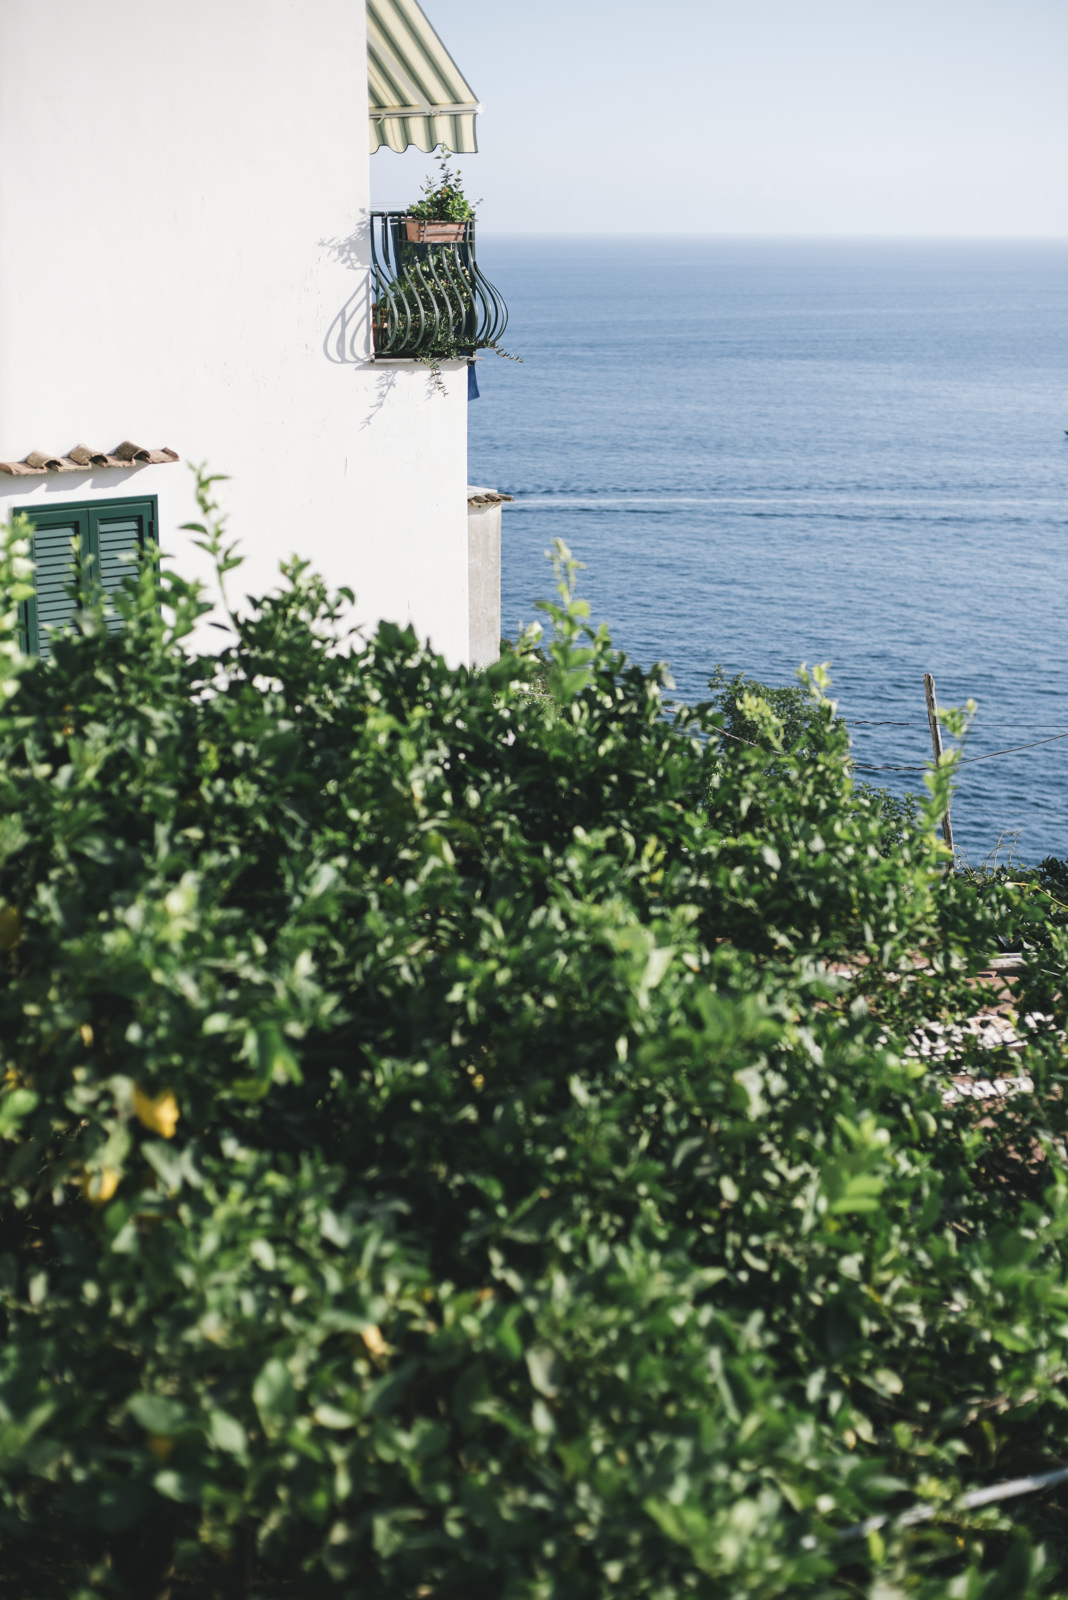 lemon trees and the sea